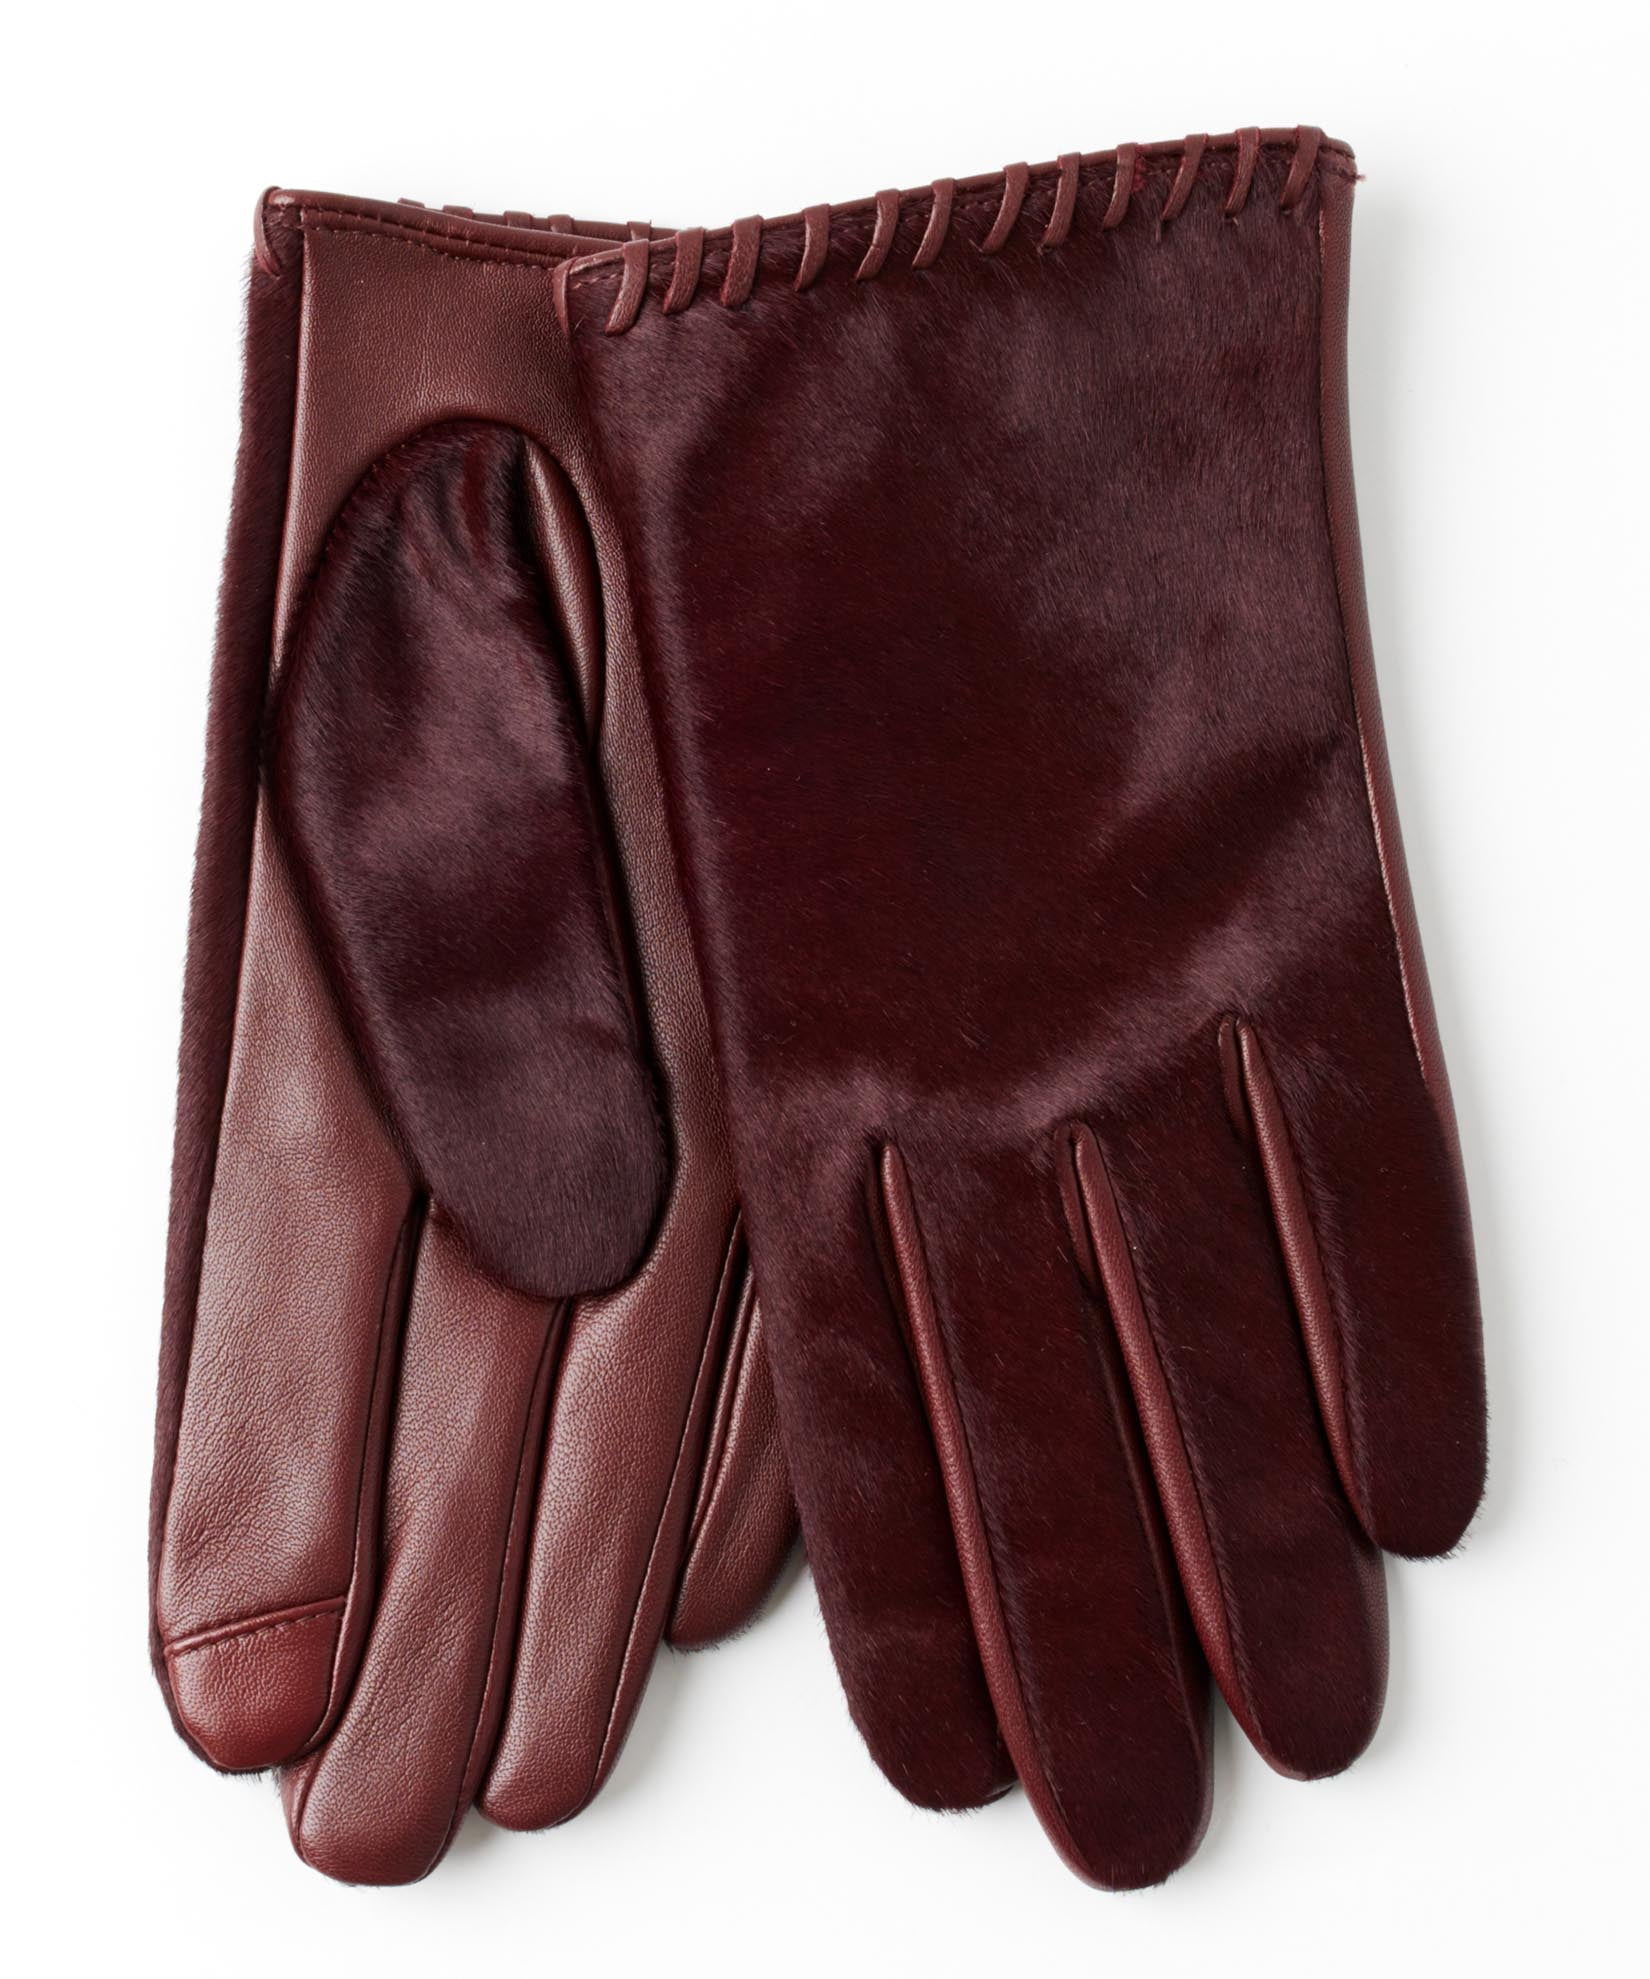 Port - Whipstitch Calf Hair Glove